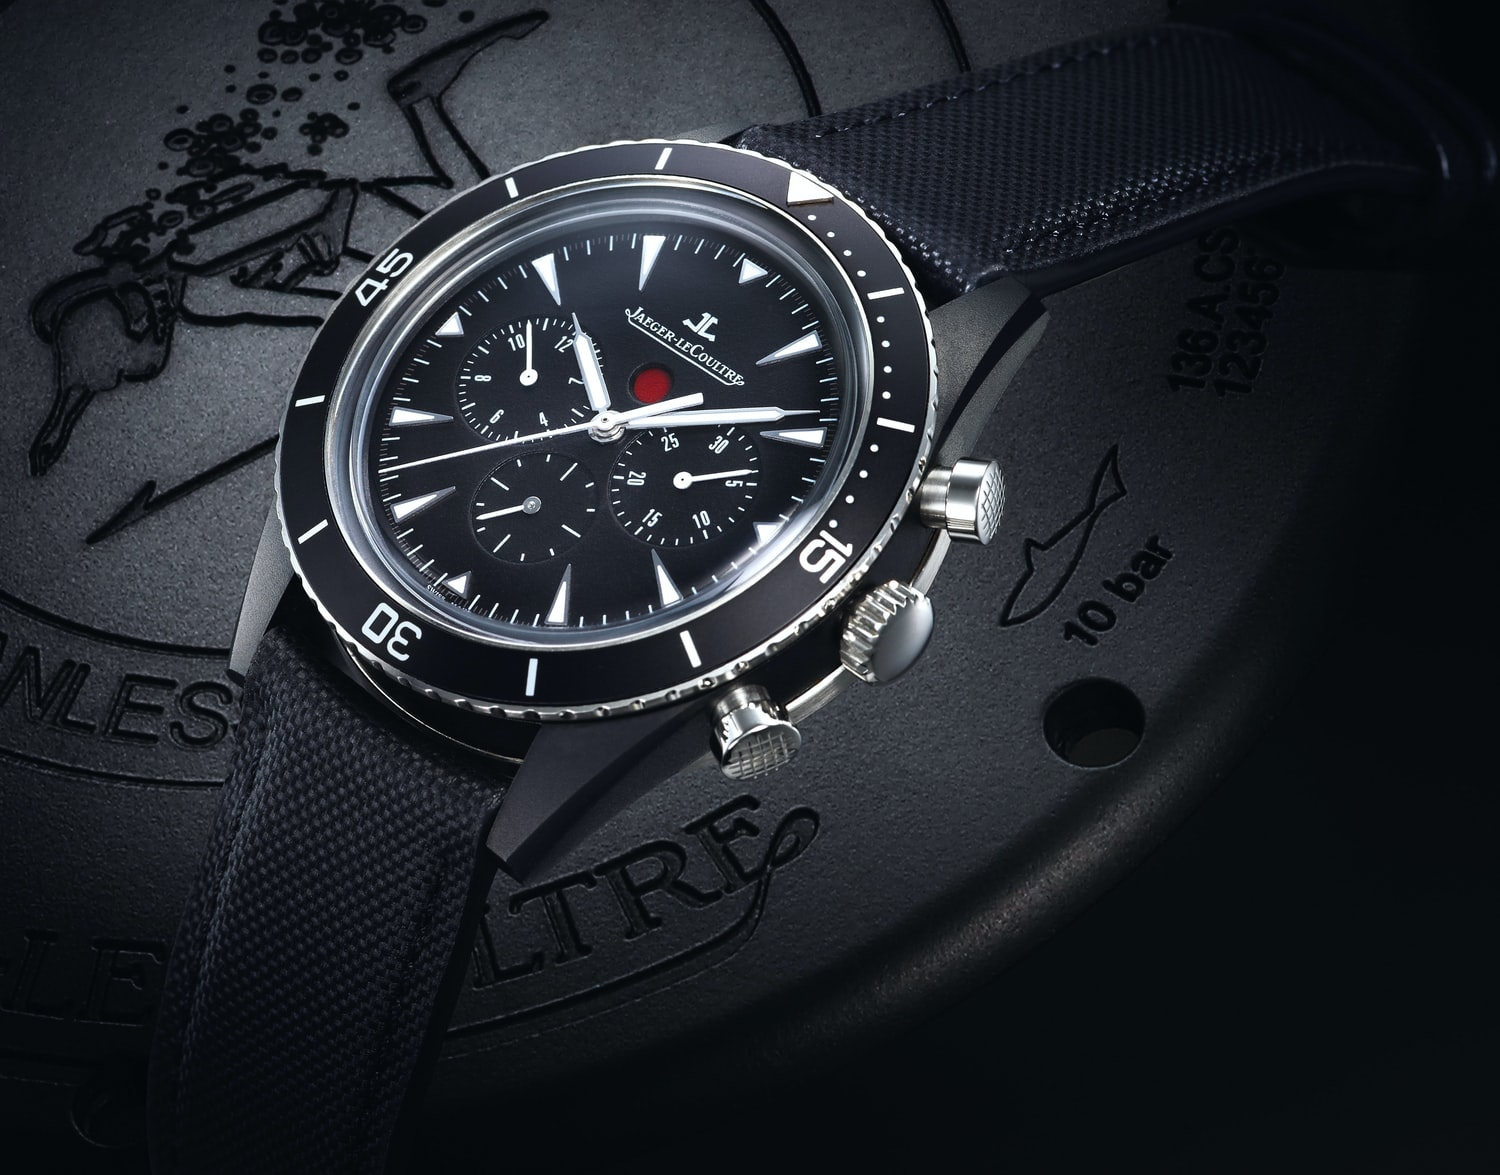 Introducing The Jaeger-LeCoultre Deep Sea Chronograph, This Time In A 44mm Cermet Case